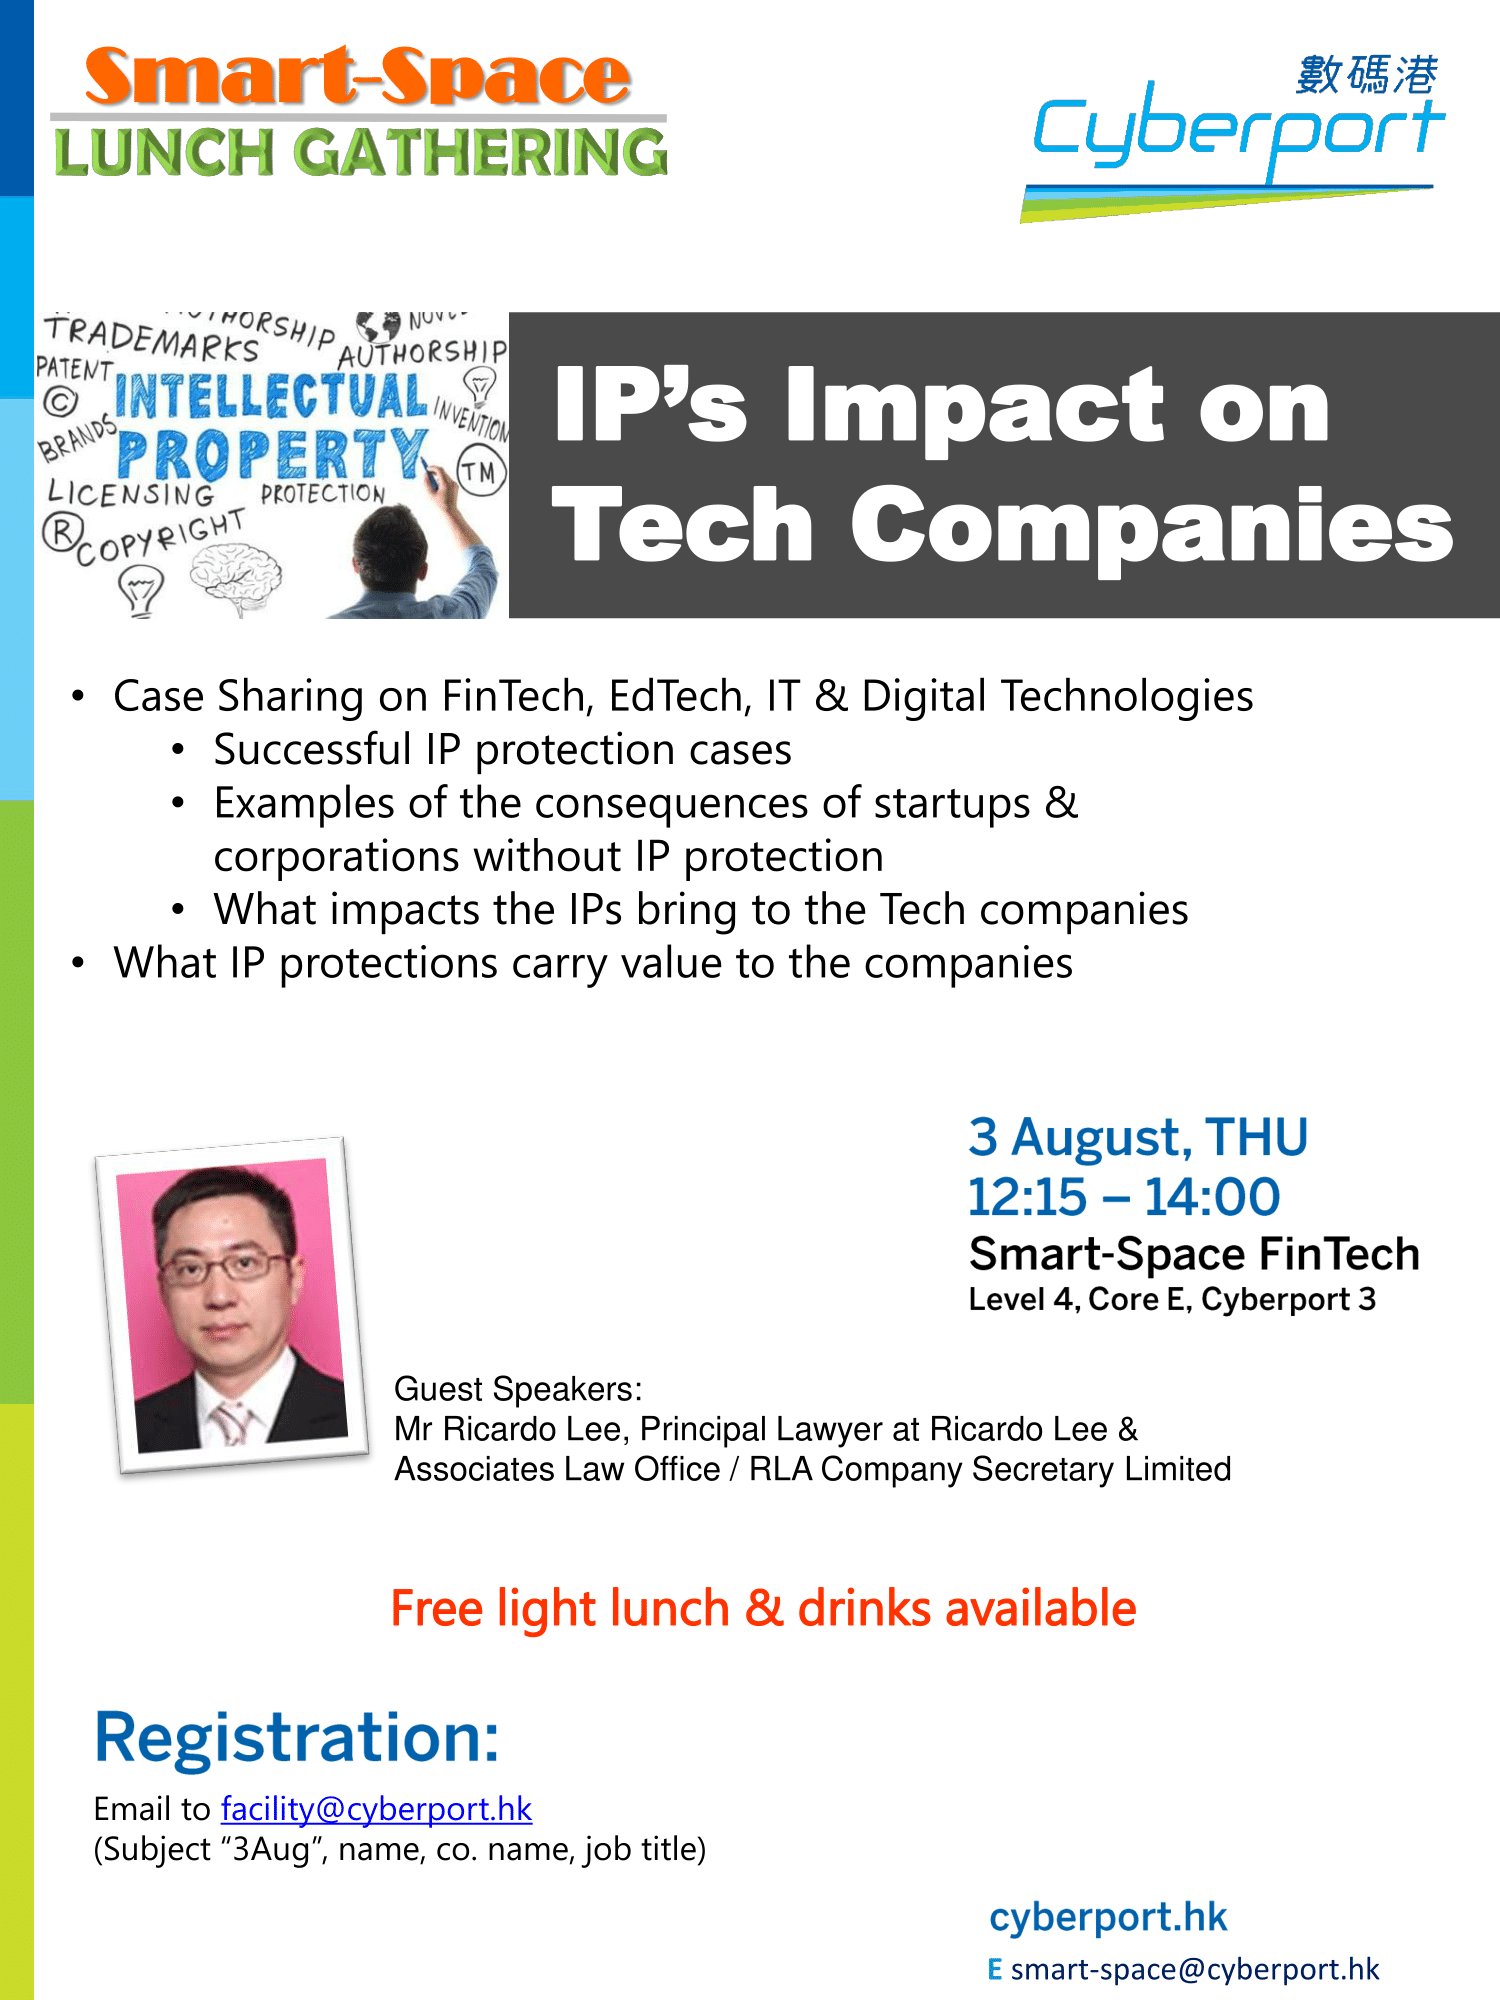 Smart-Space Lunch Gathering: IP's Impact on Tech Companies